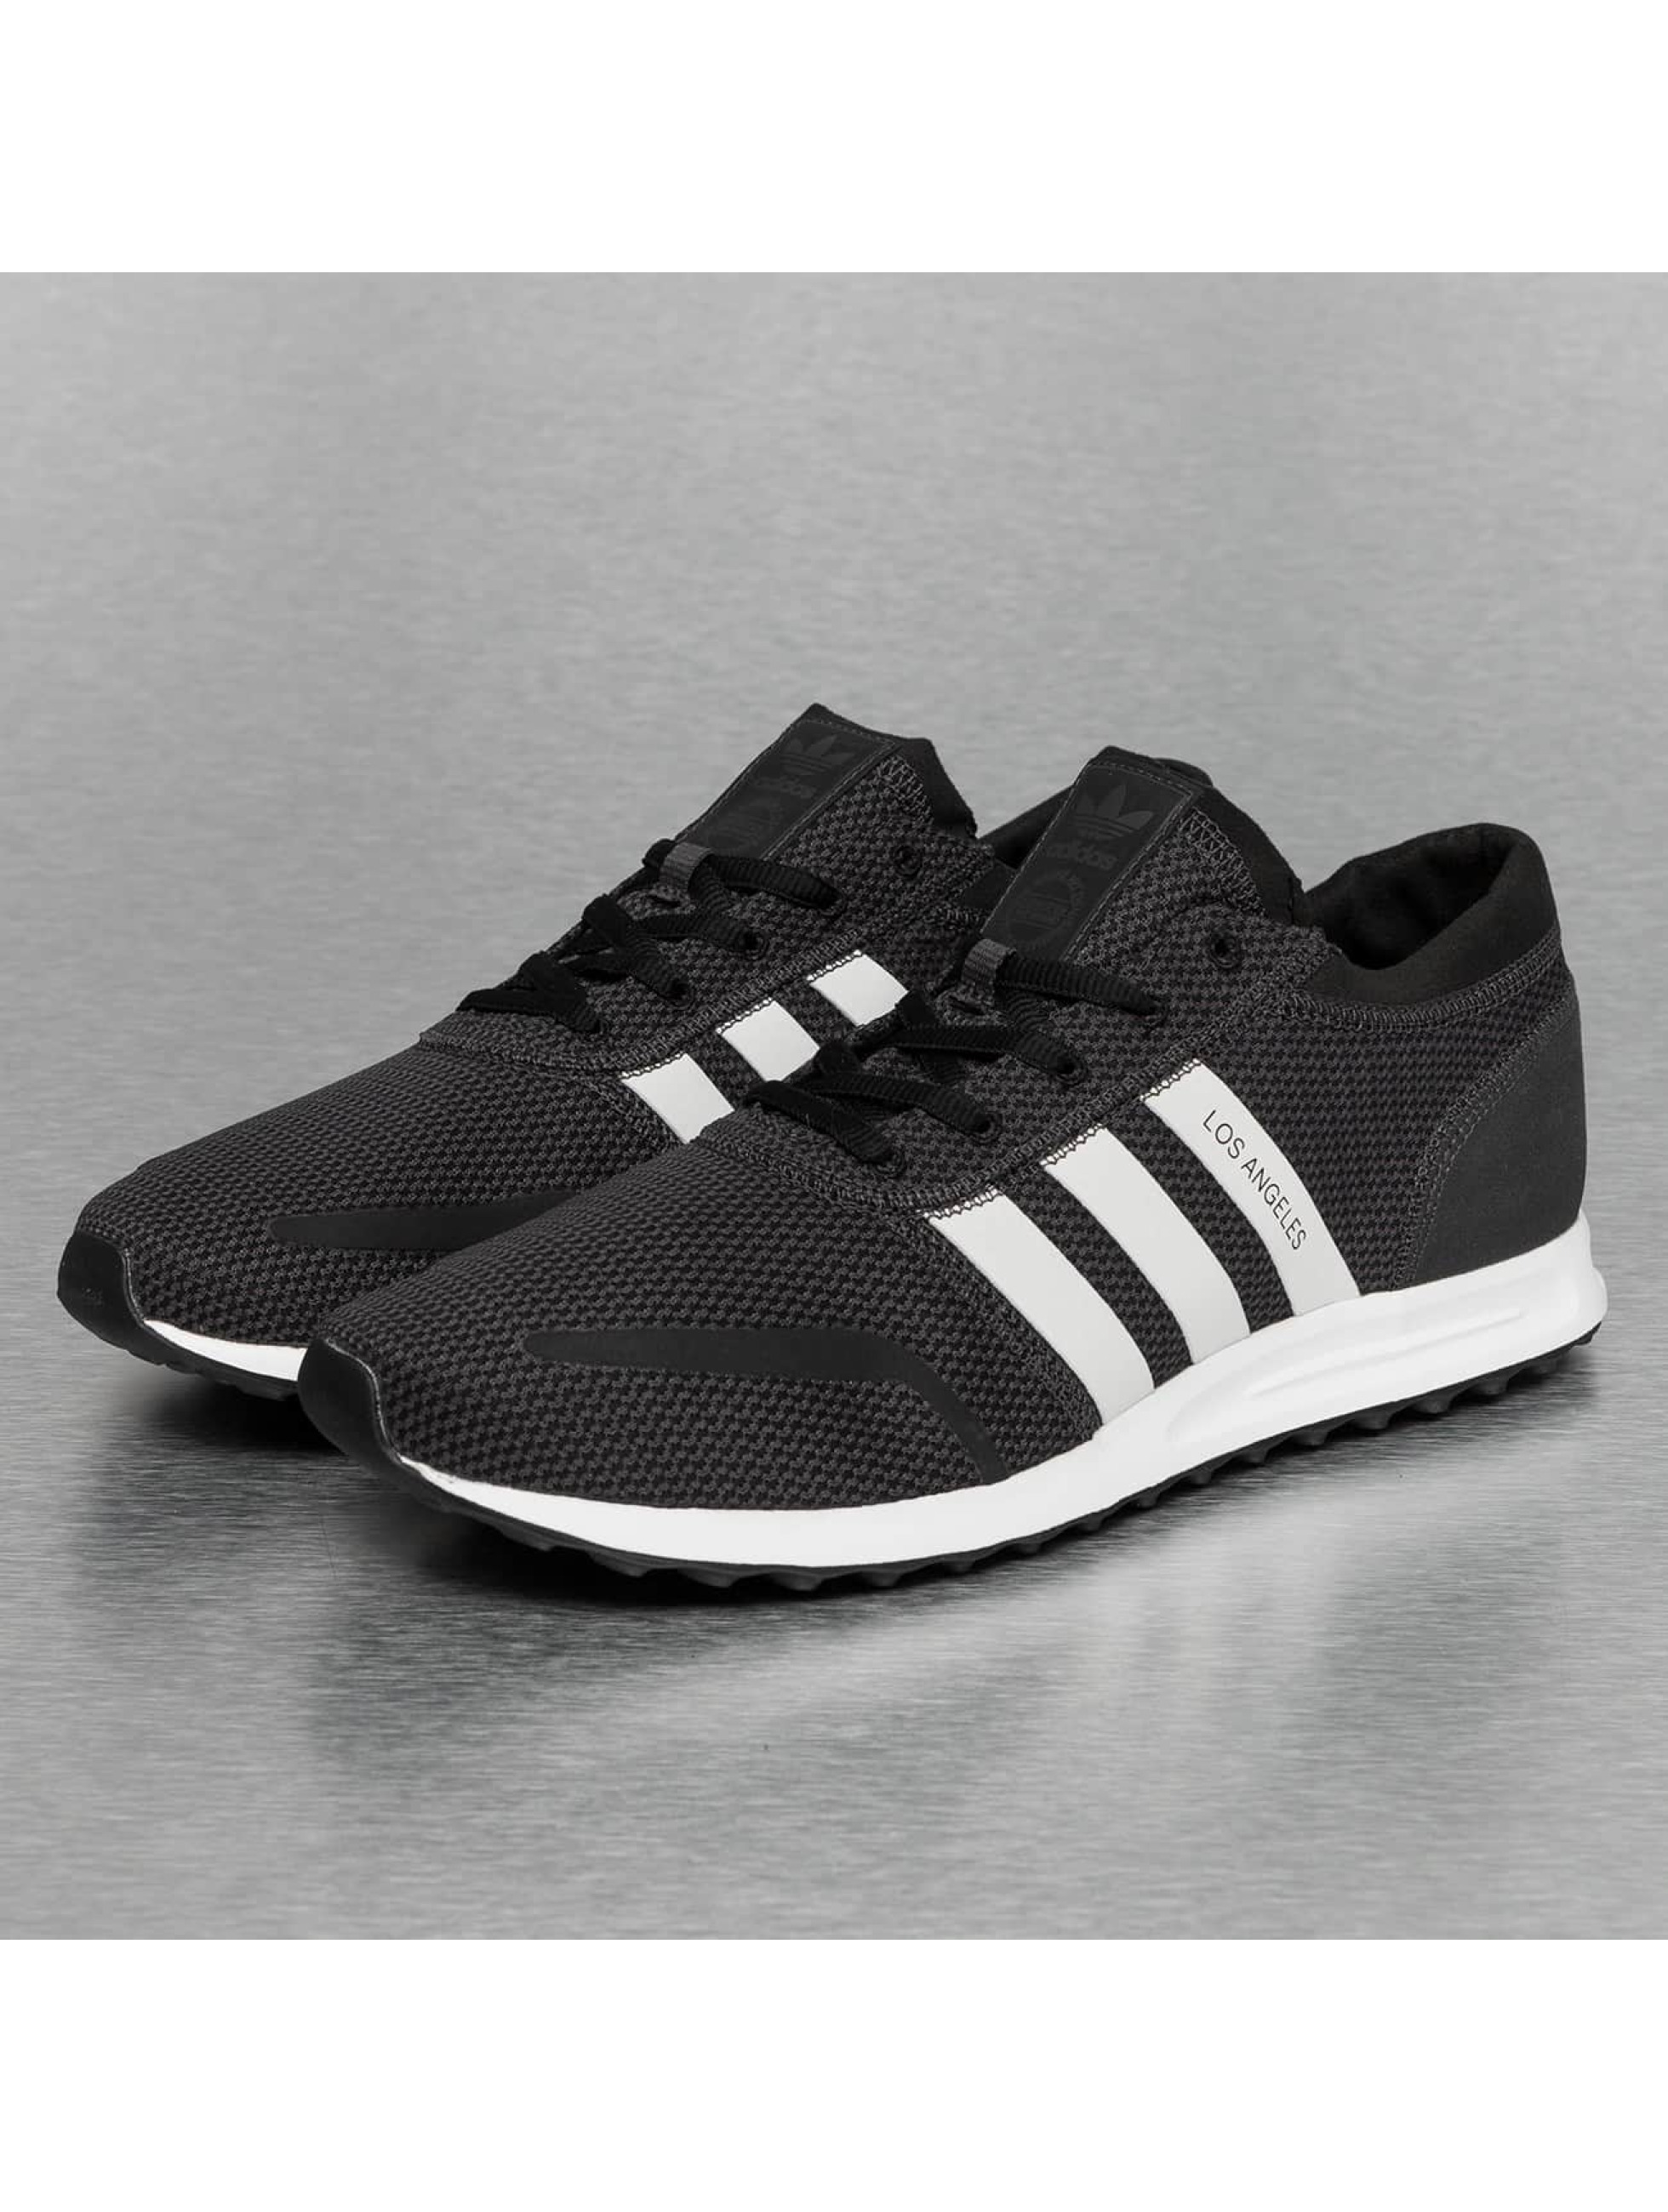 adidas herren schuhe sneaker los angeles ebay. Black Bedroom Furniture Sets. Home Design Ideas